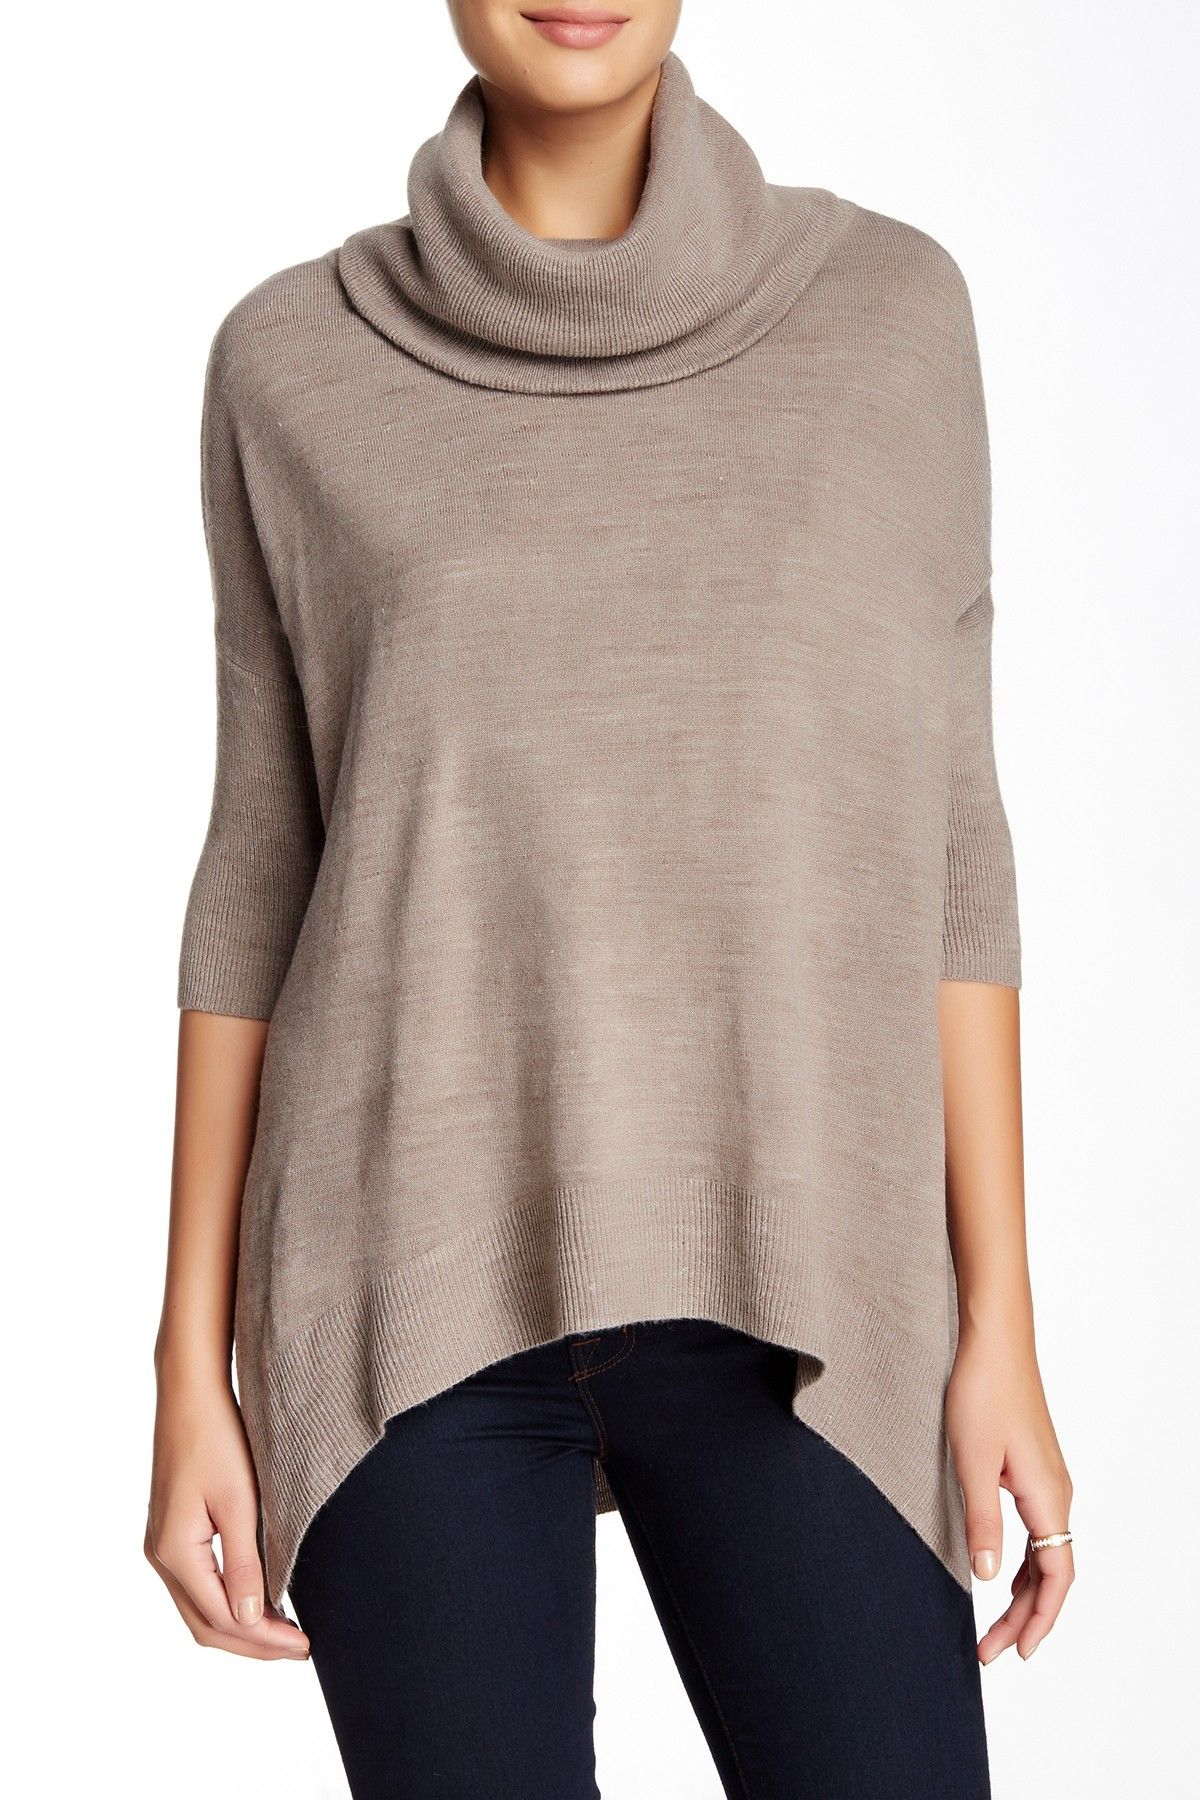 Sweet Romeo | 3/4 Length Sleeve Boxy Cowl Neck Sweater | Colors ...